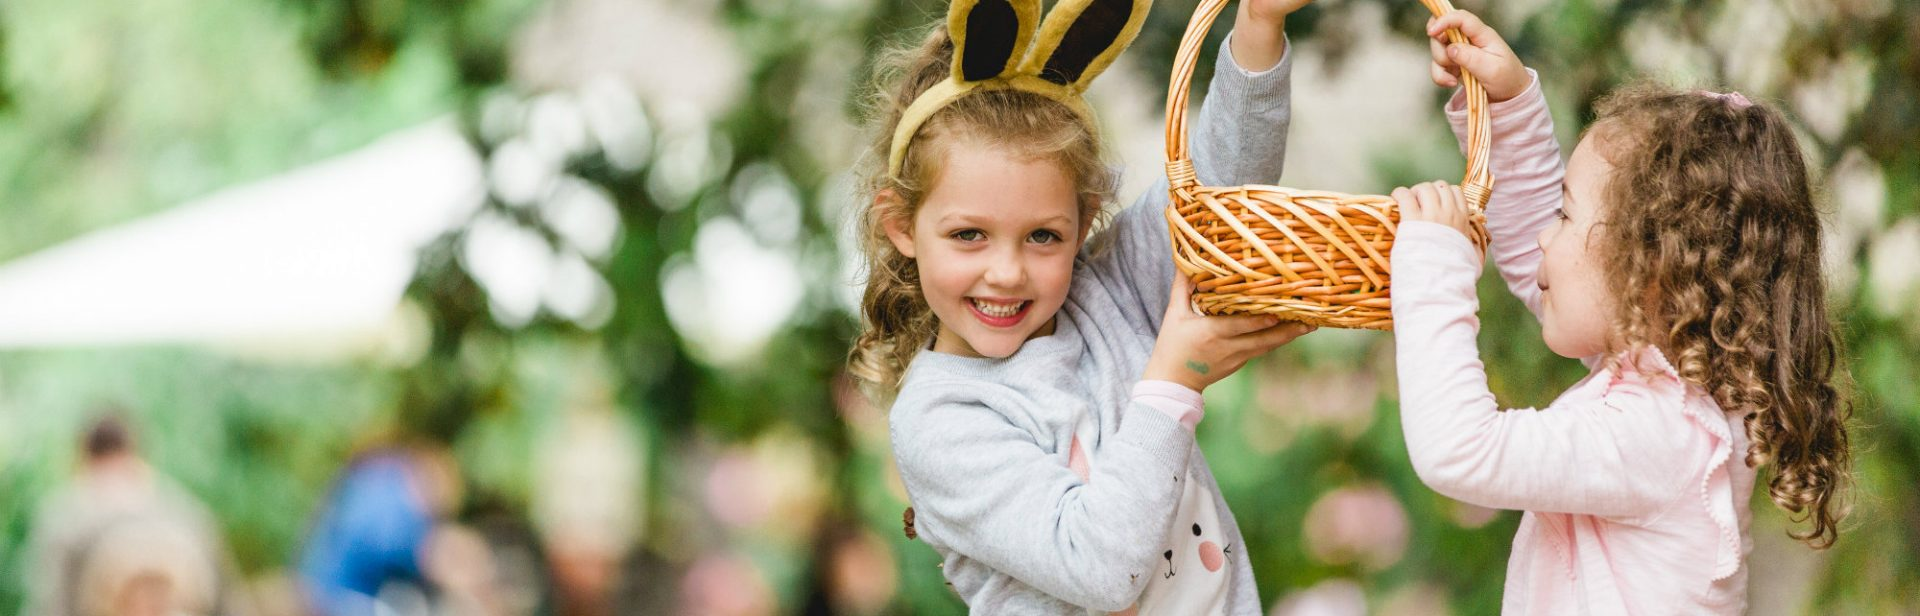 easter_fun_day_2017-1920x616